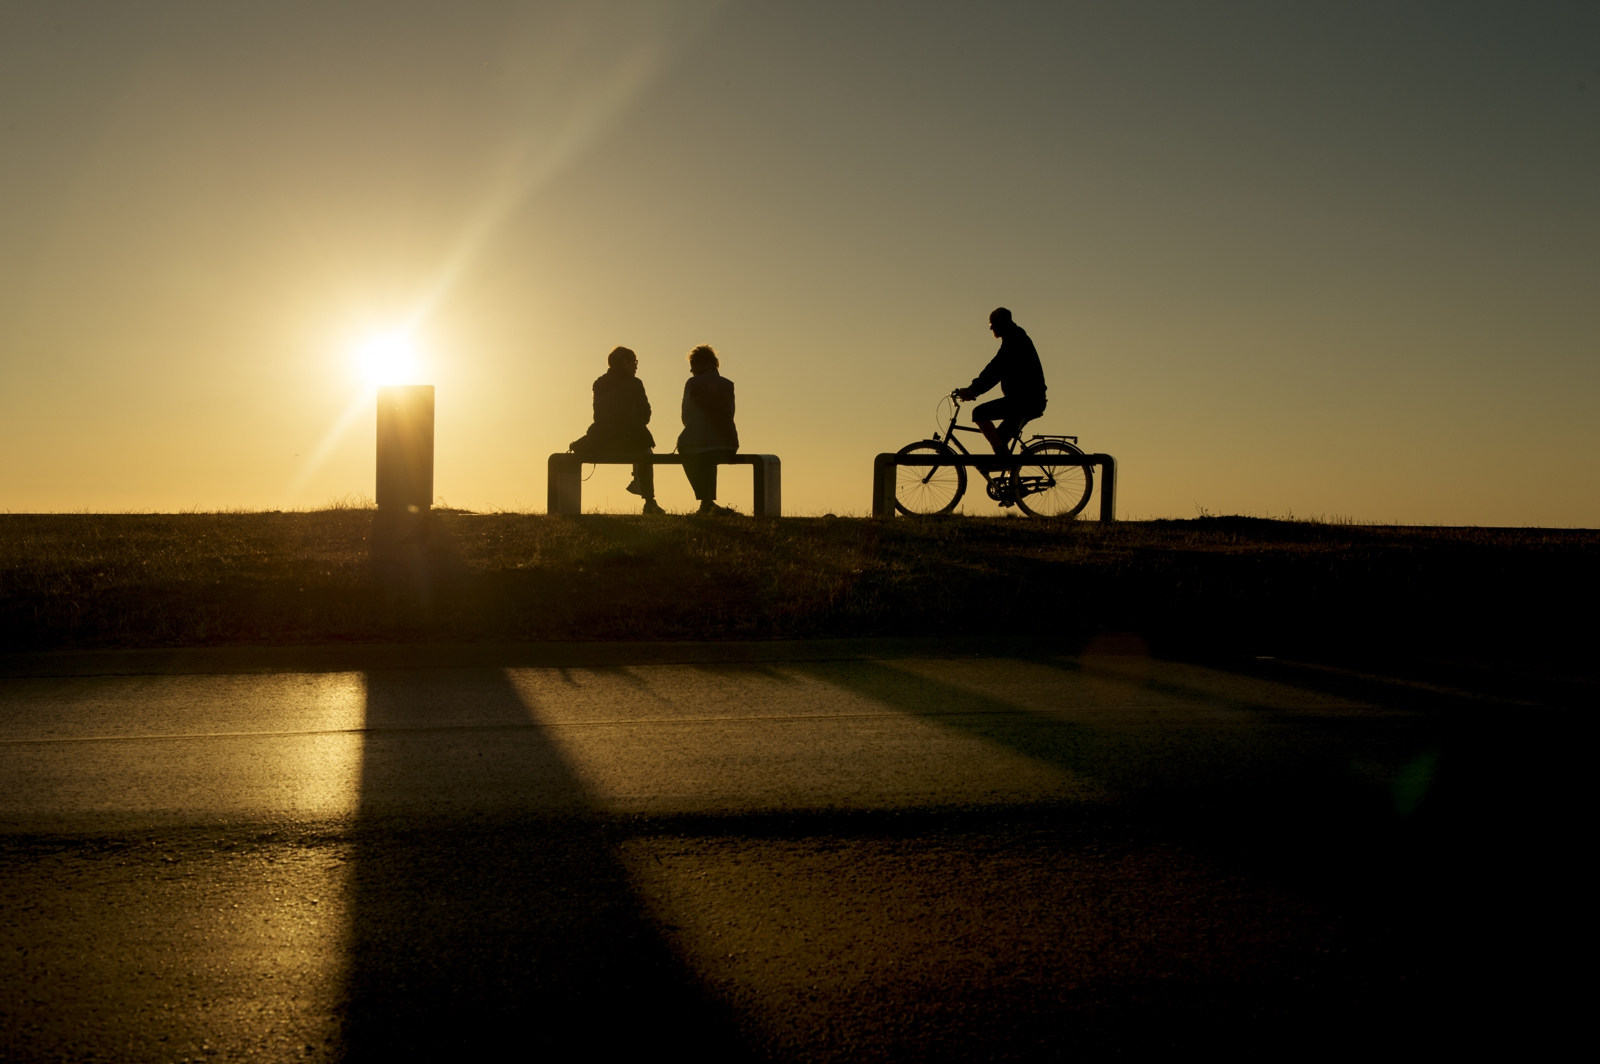 Bicycle silhouette